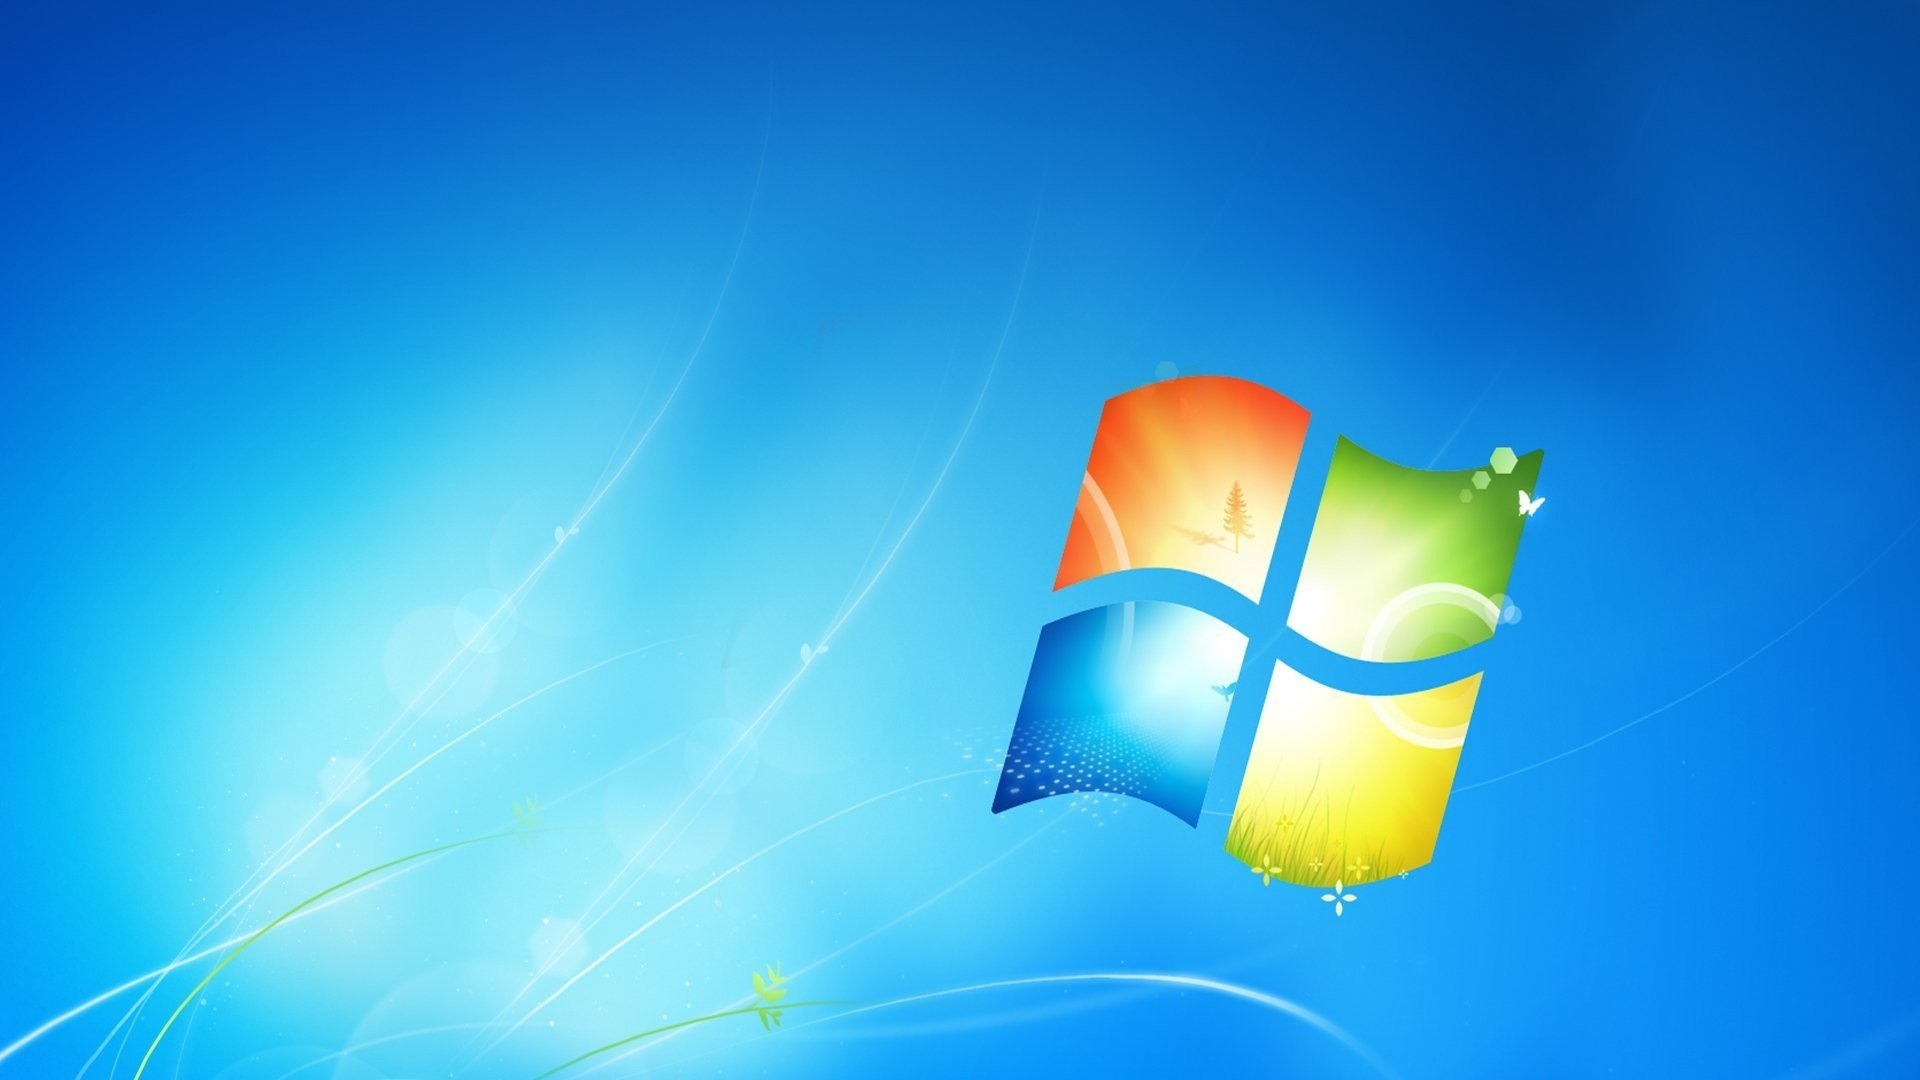 Free Download Windows 7 Wallpaper Hd 1920x1080 54 Images